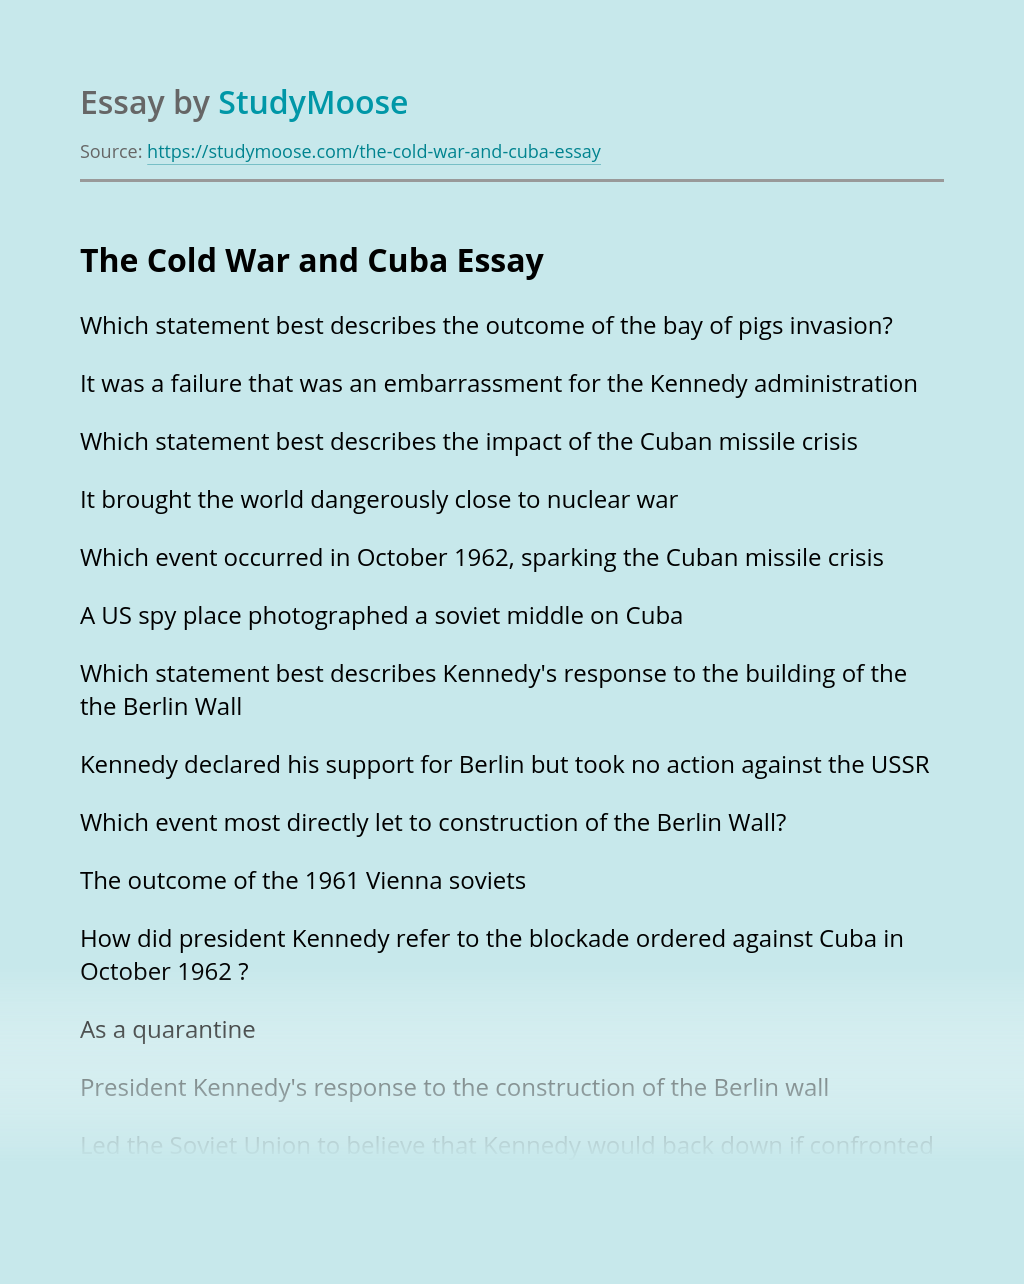 The Cold War and Cuba